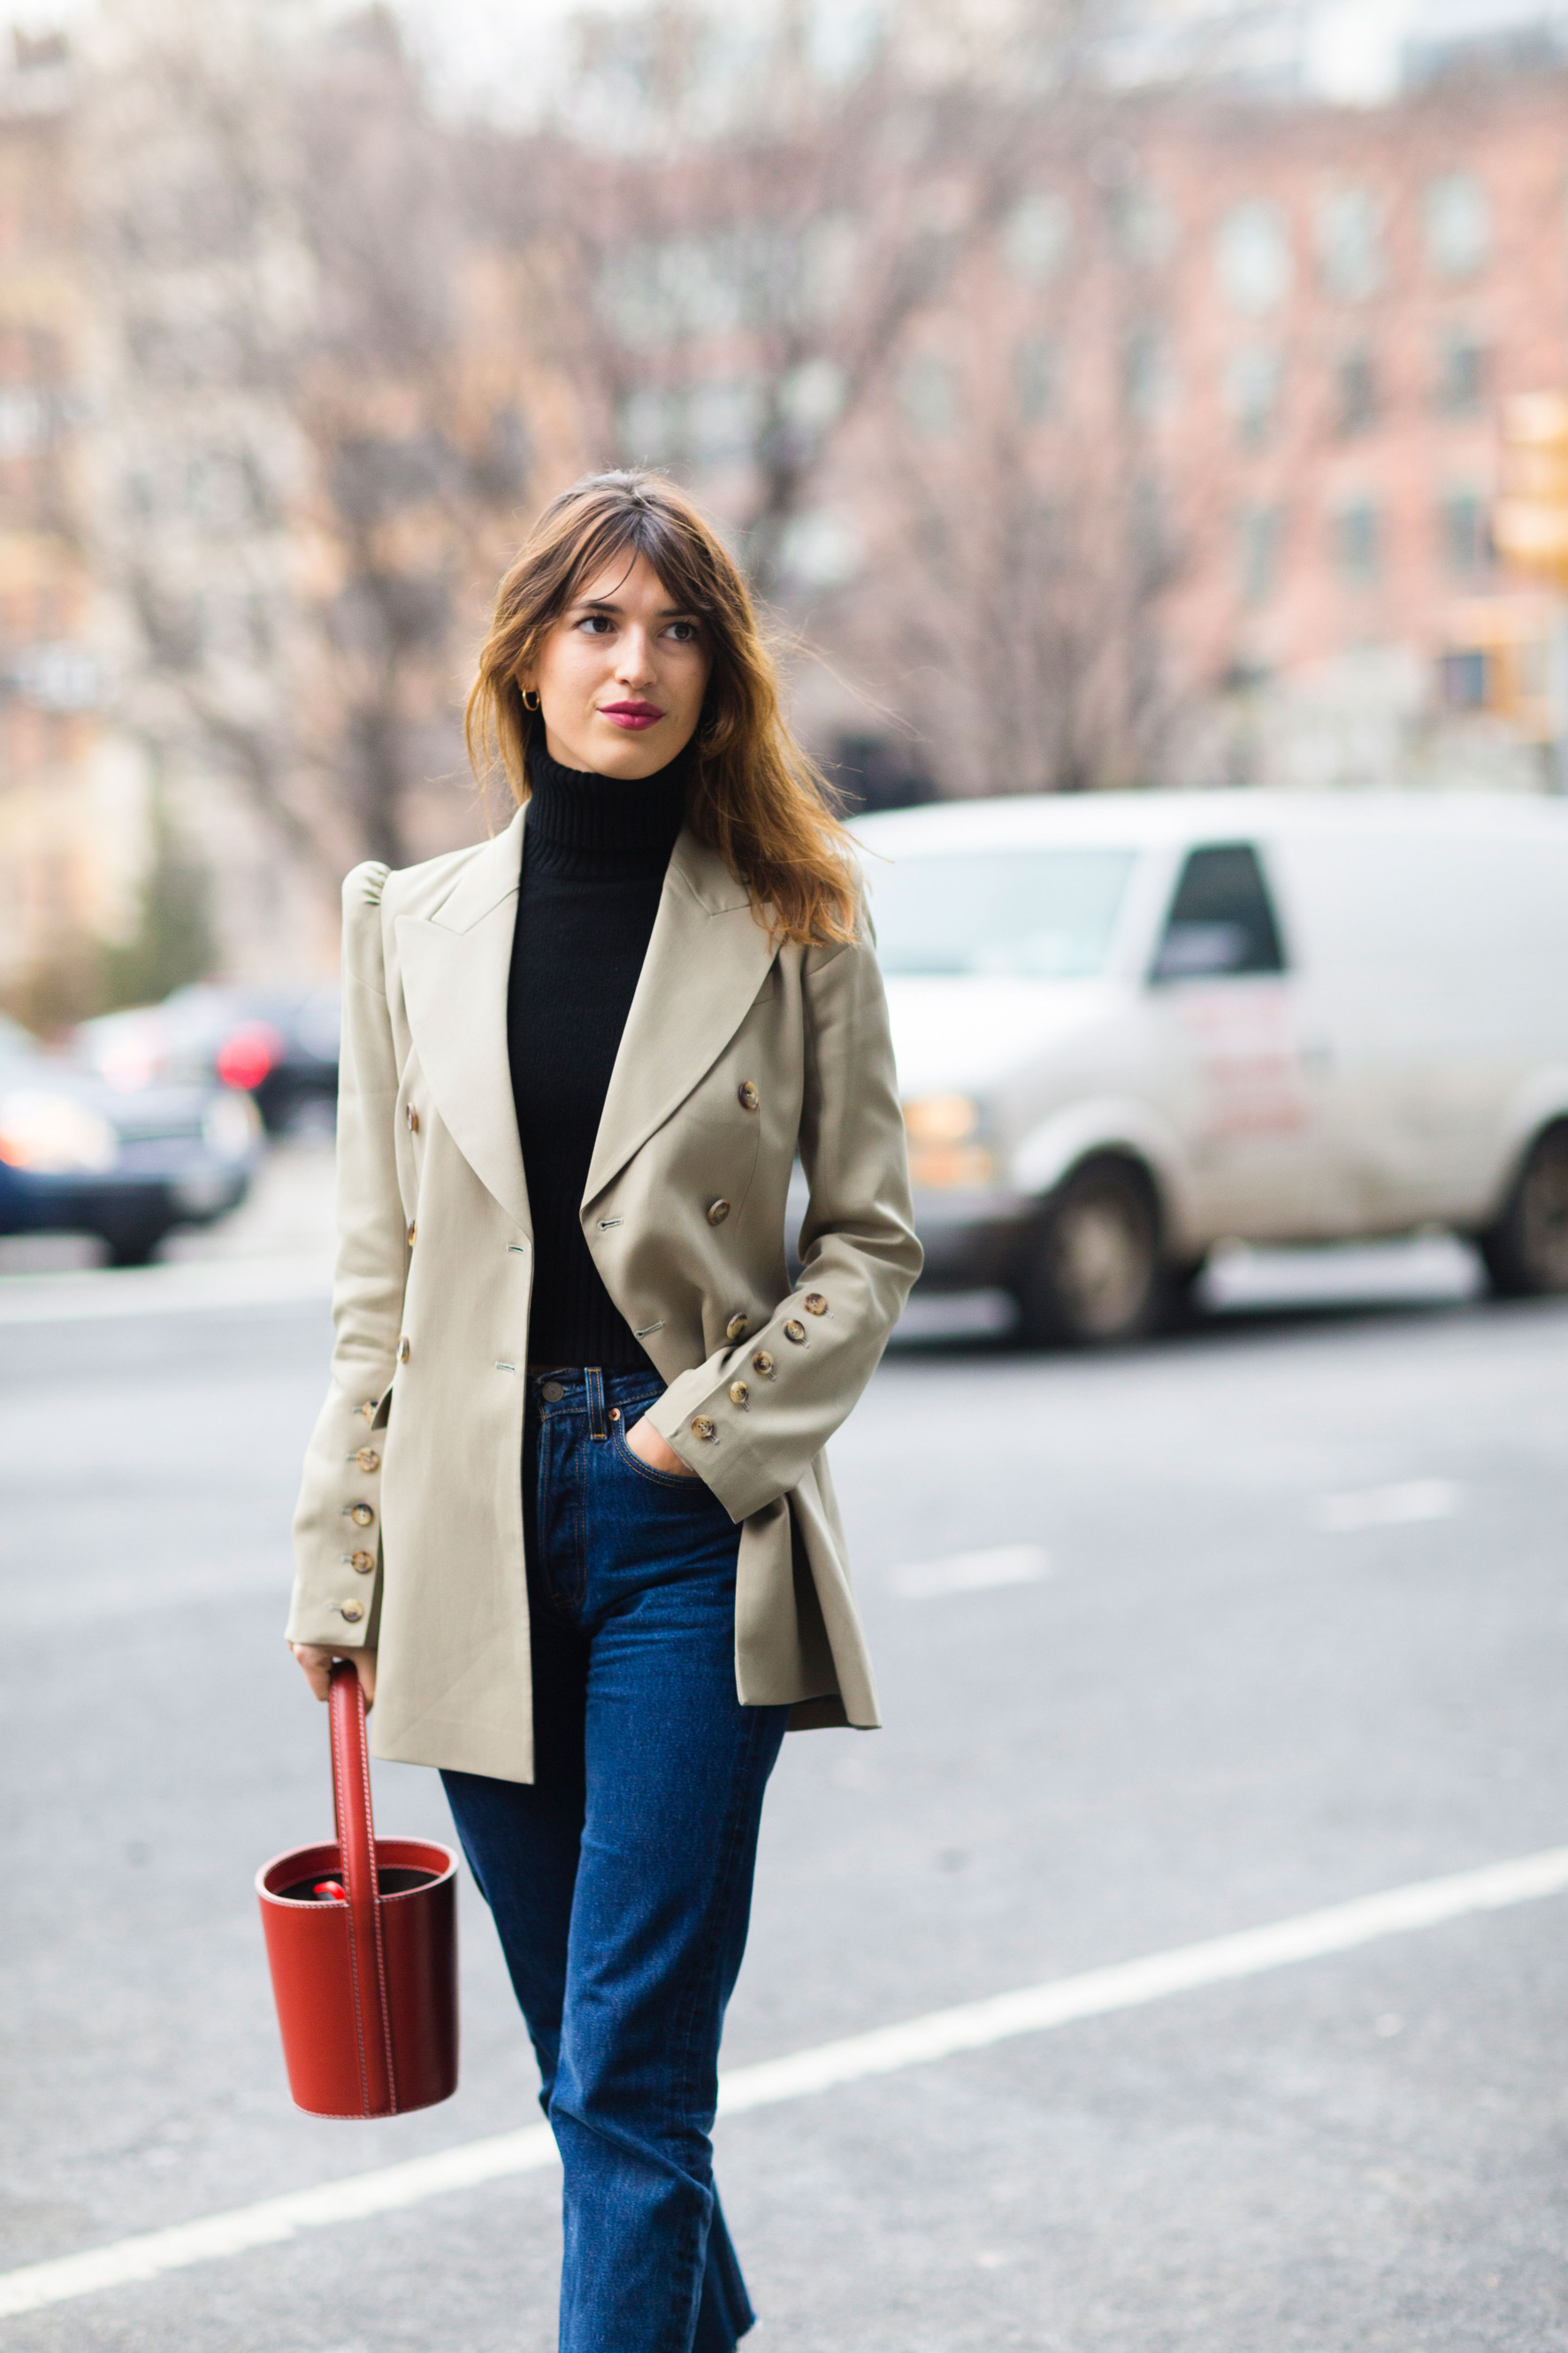 Image of Jeanne Damas, Photo by Nabile Quenum  Jeanna Damas is the queen of effortless cool and this look is no exception! The only thing that could make it better? Throwing on the  Long Tassel Lariat  over that sleek turtle neck!